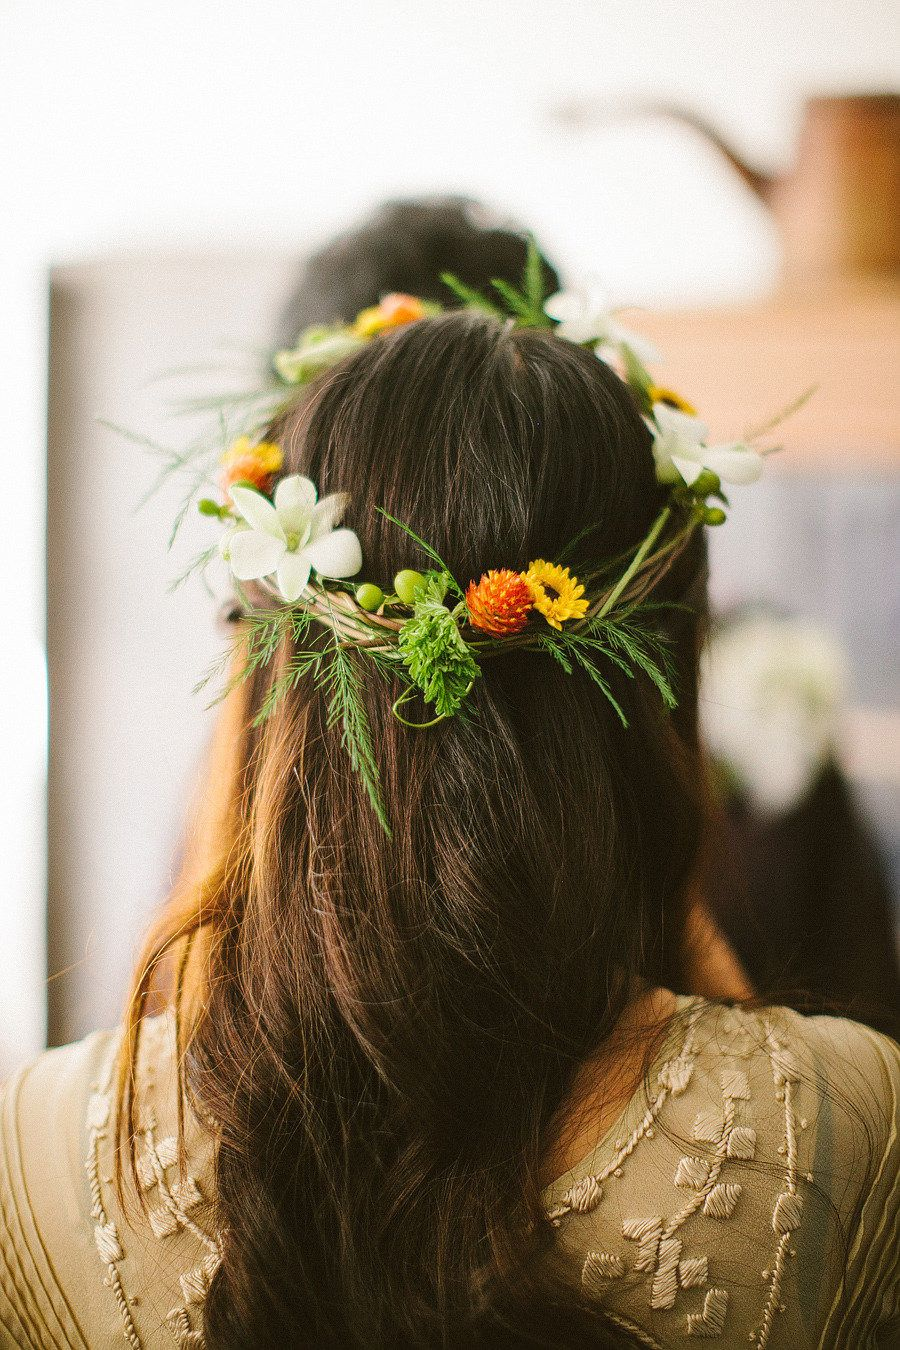 #hairstyles  Photography: Redfield Photography - redfieldphoto.com Floral Design: Michael\'s House of Flowers - michaelshouseofflowers.com/  Read More: http://www.stylemepretty.com/2013/03/20/upstate-new-york-wedding-from-redfield-photography/